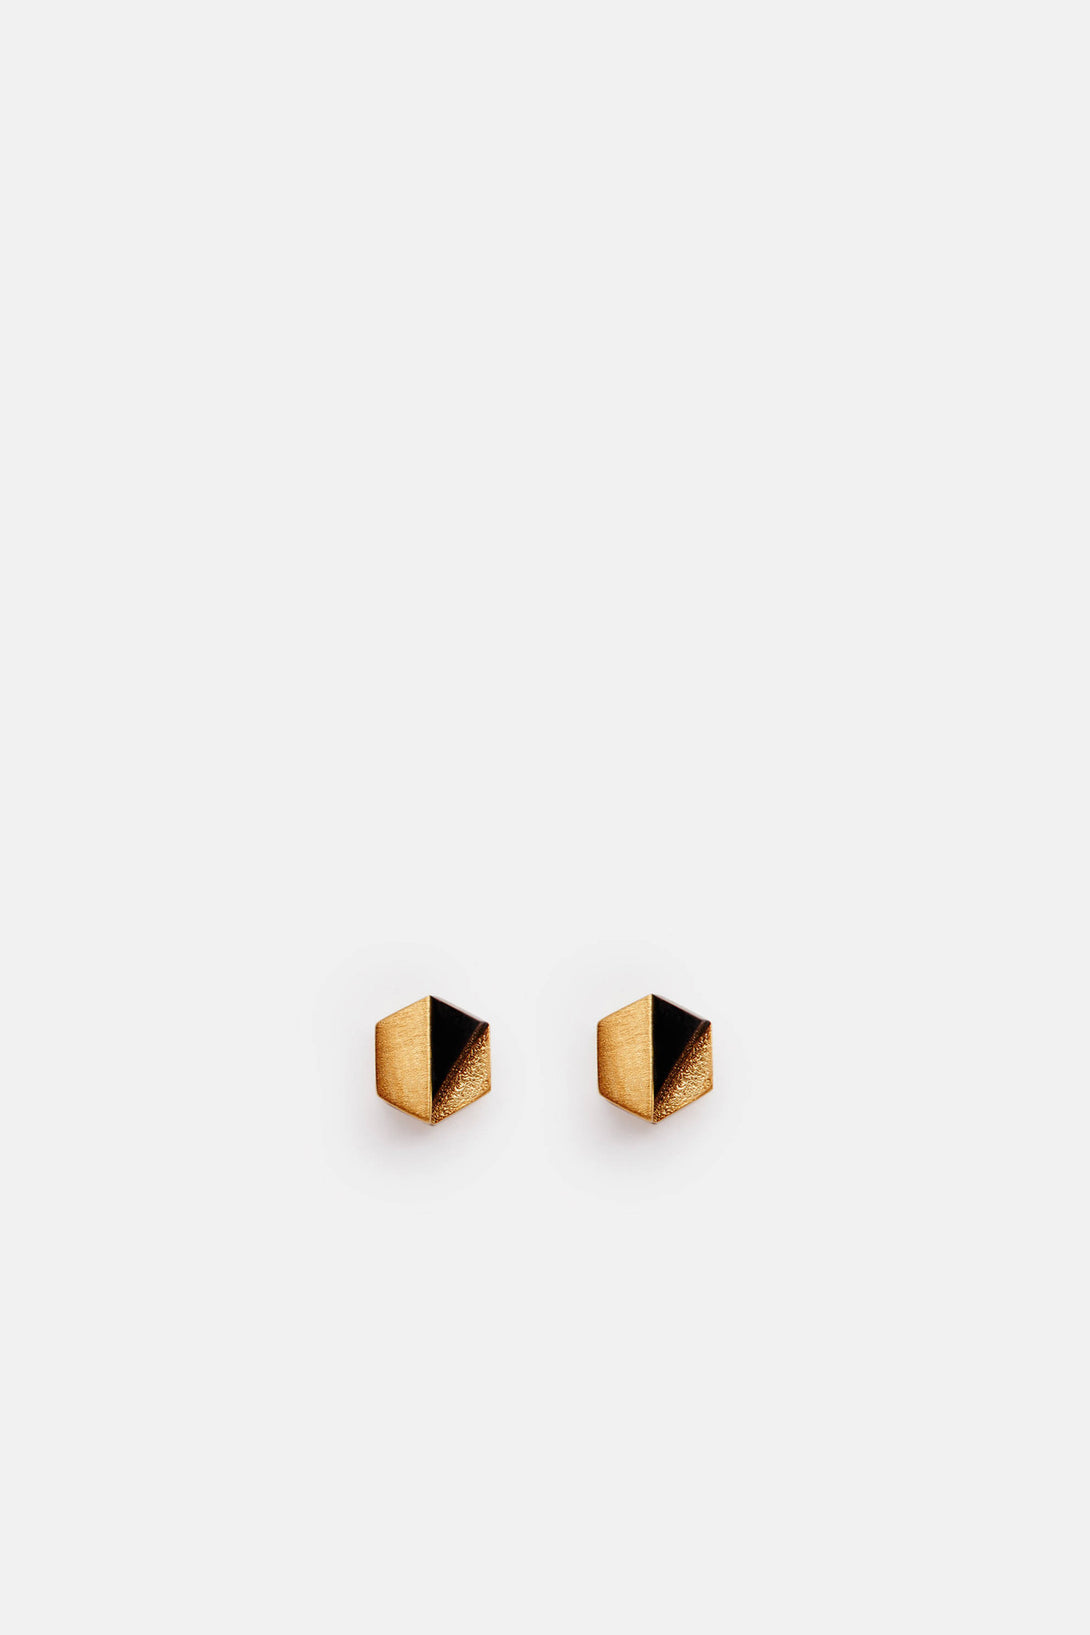 Decimal Earrings - 18K Gold Plated Brass with Onyx